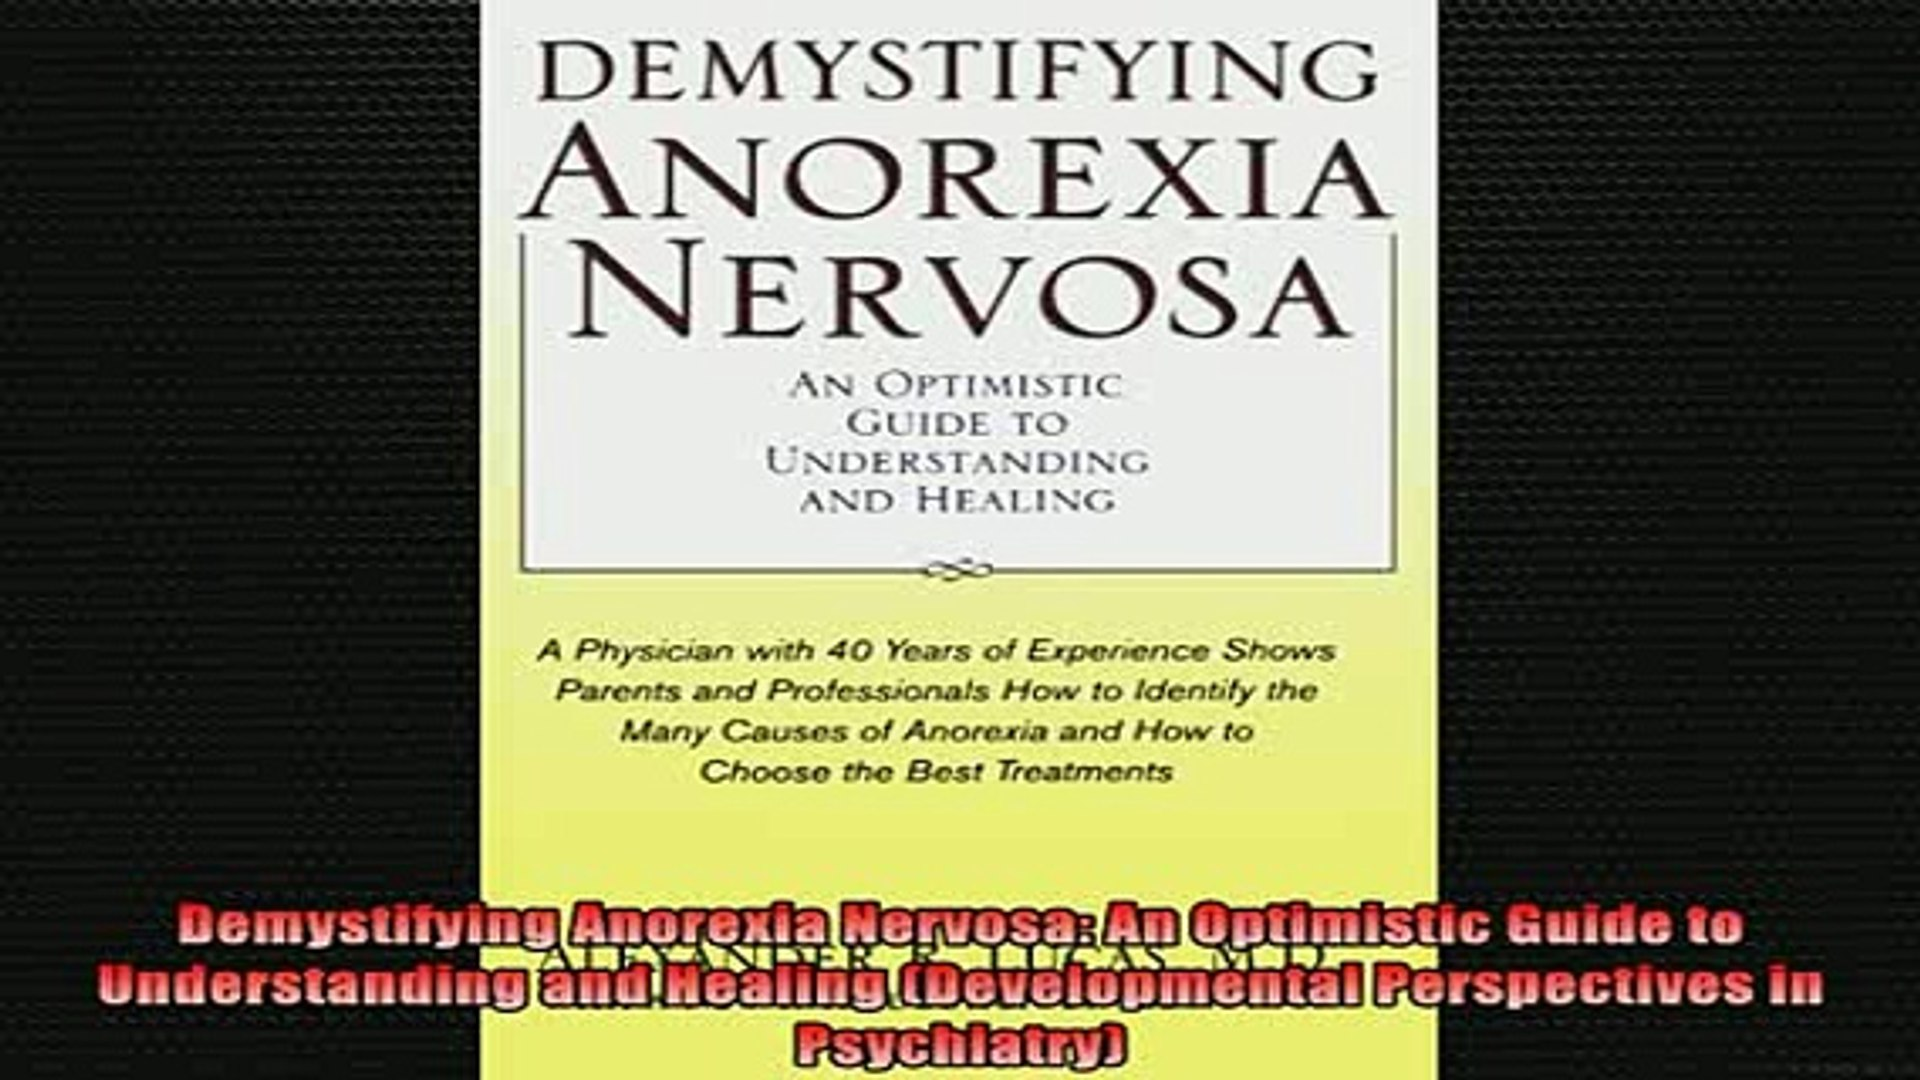 Demystifying Anorexia Nervosa: An Optimistic Guide to Understanding and Healing